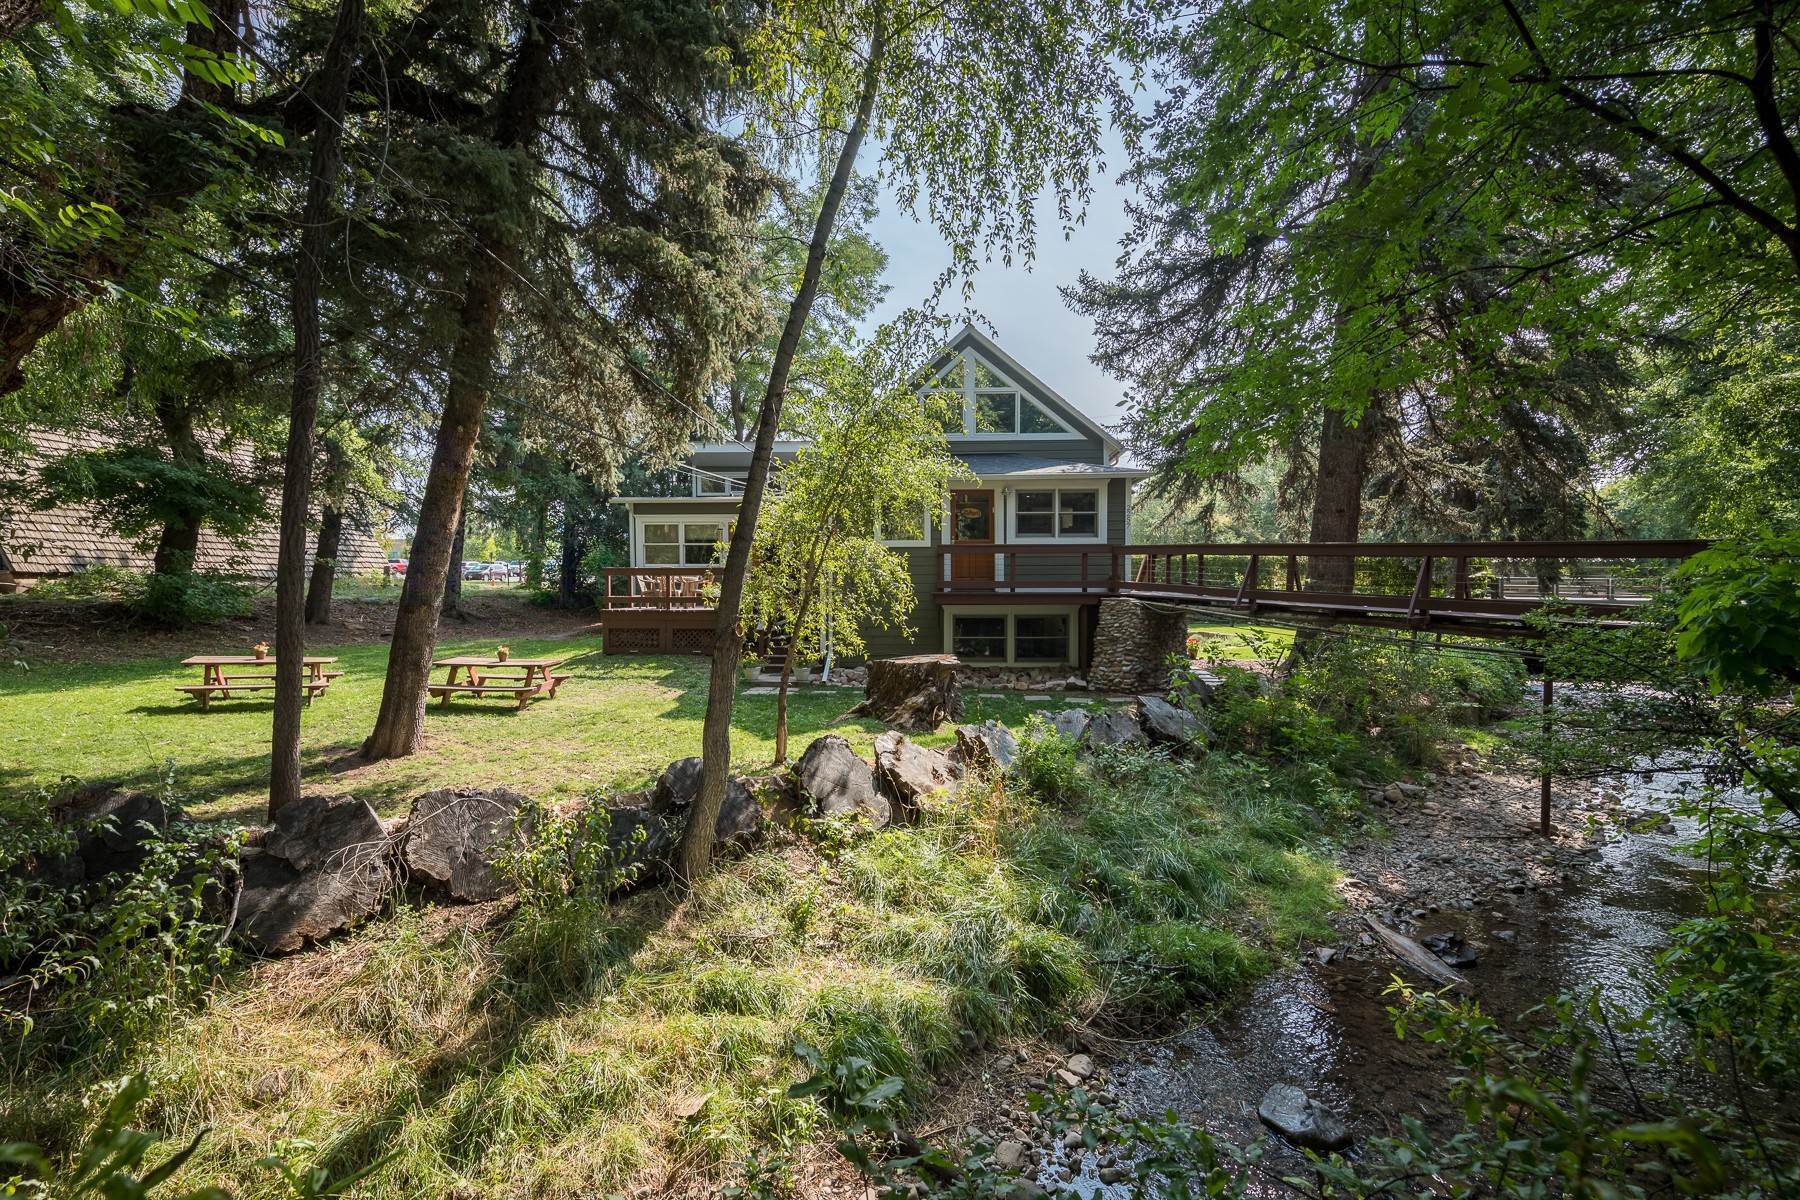 Property for Sale at 2257 Main Avenue Durango, Colorado 81301 United States